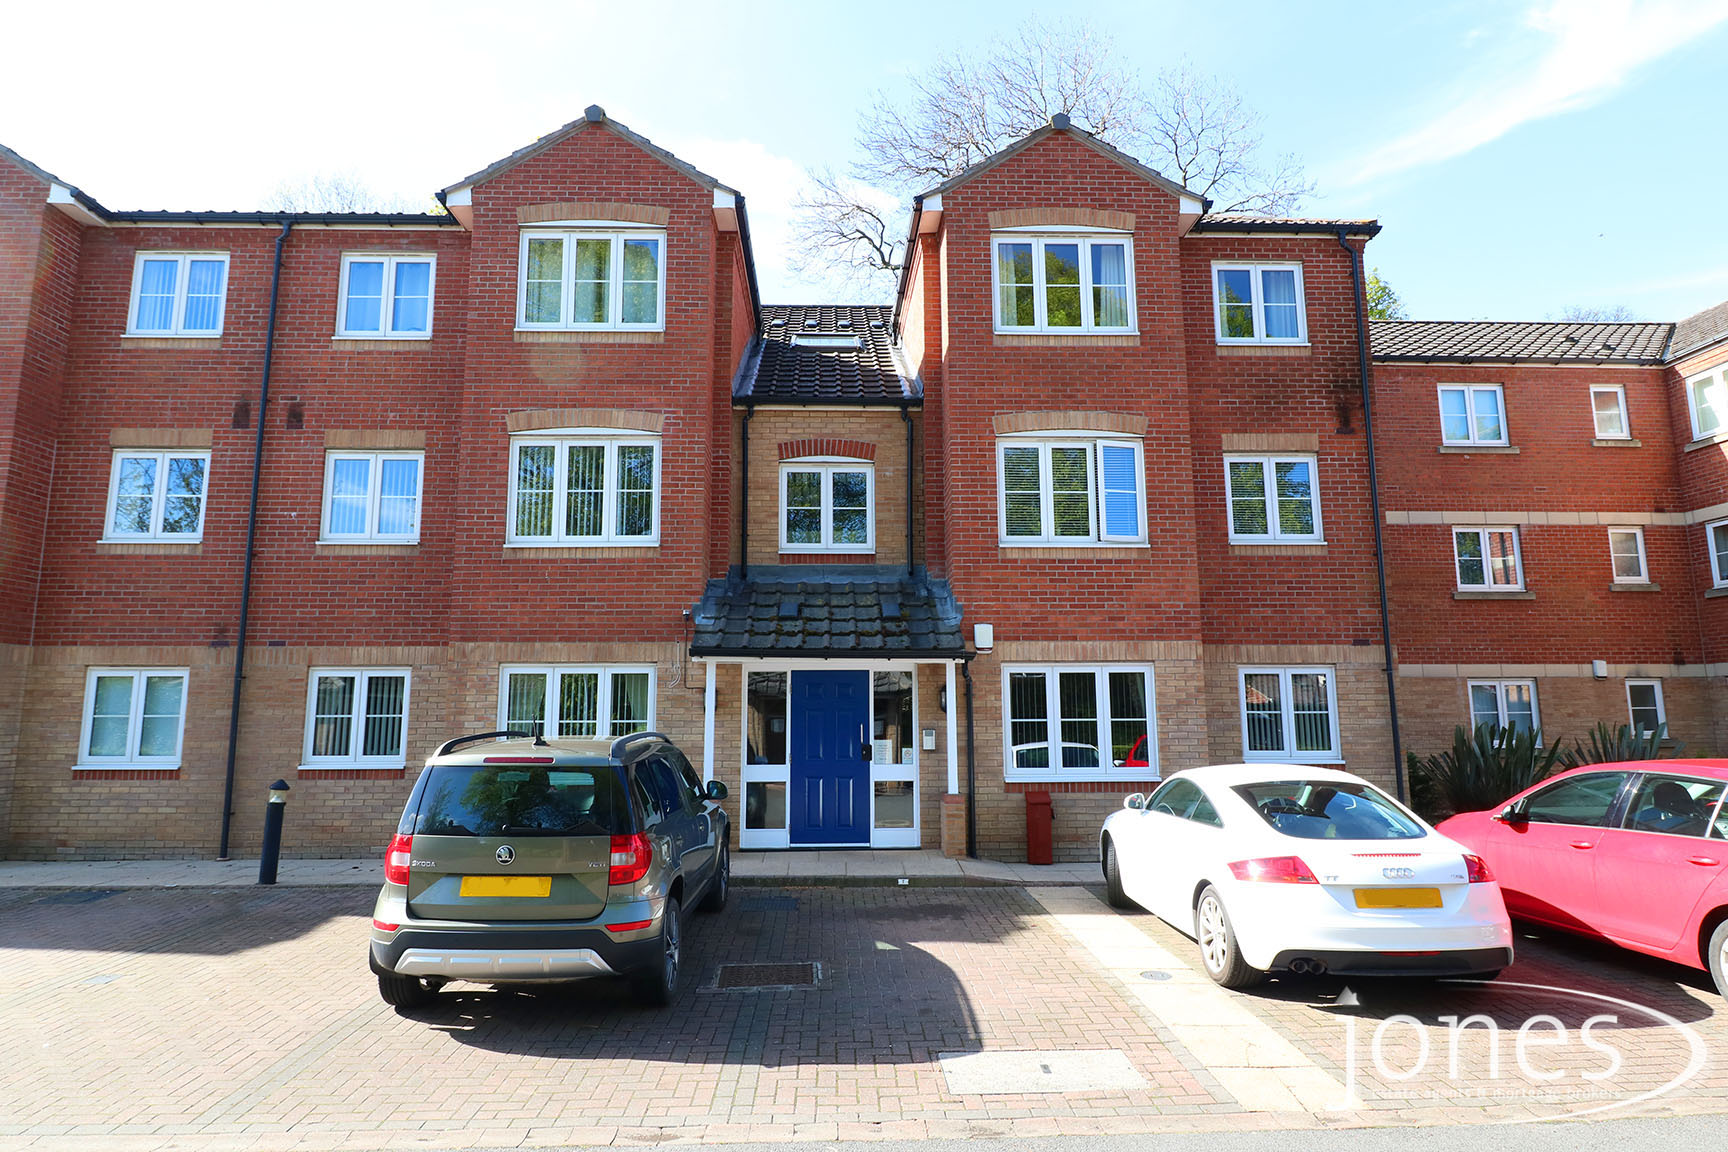 Home for Sale Let - Photo 01 Earls Court, Norton, Stockton on Tees TS20 2NP